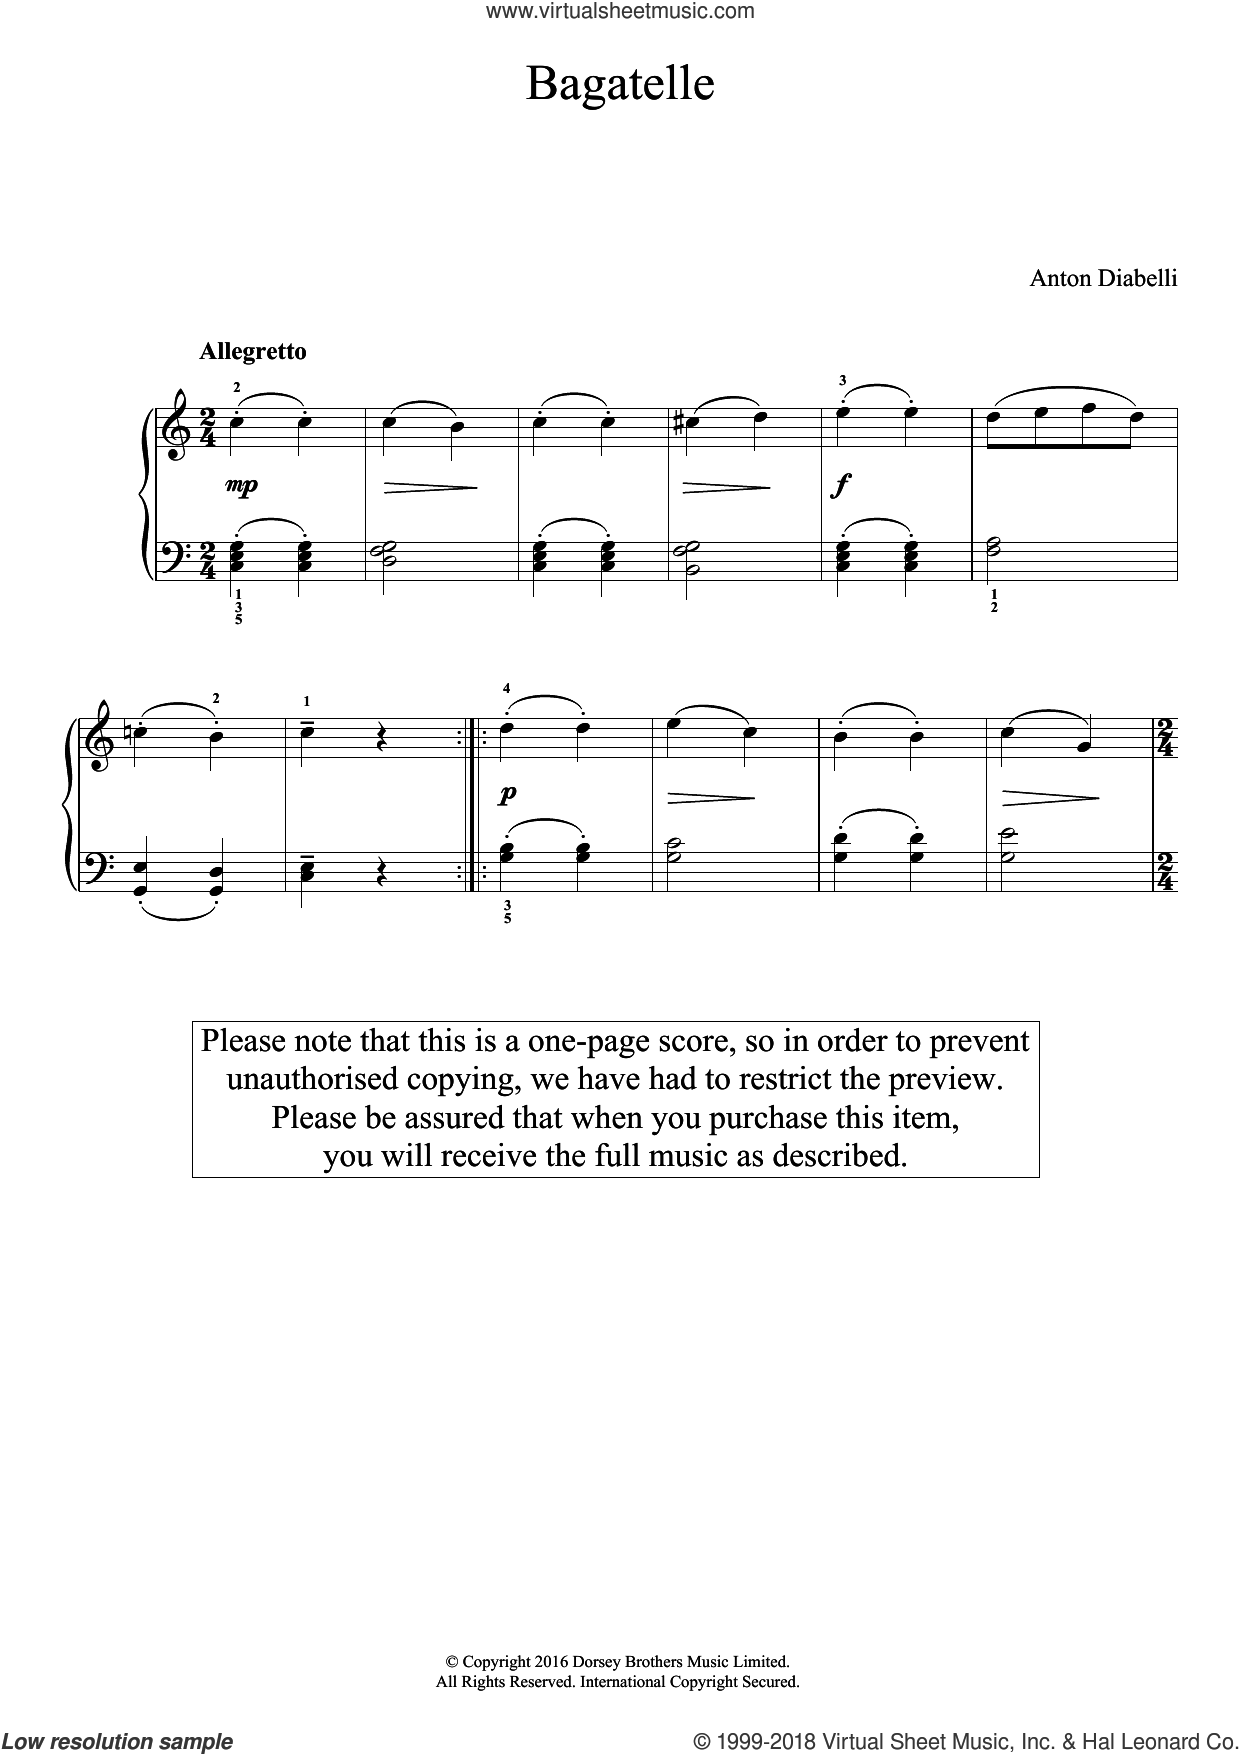 Bagatelle sheet music for piano solo by Antonio Diabelli, classical score, easy skill level